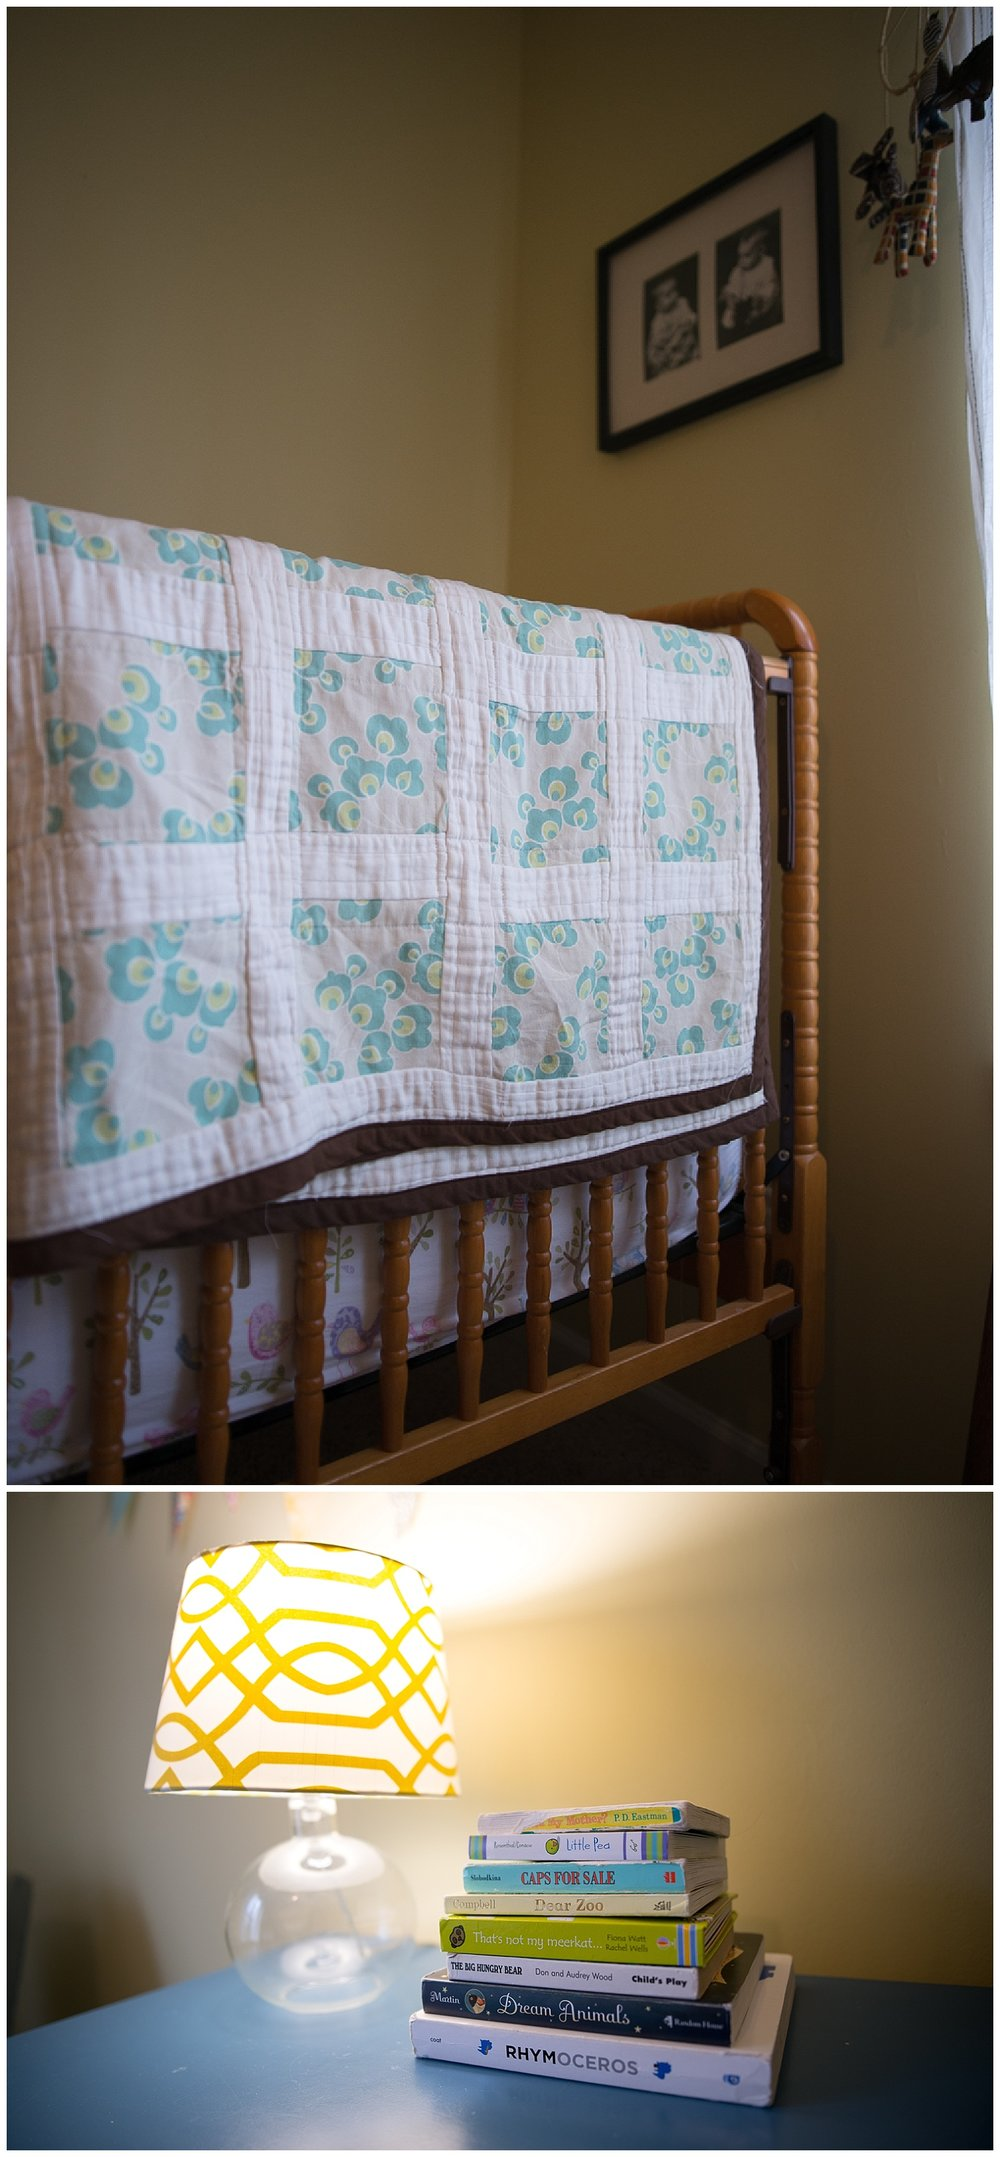 Helen made Holly's quilt and above the bed hangs a birthday present from her mom - a framed picture of Helen as a child.